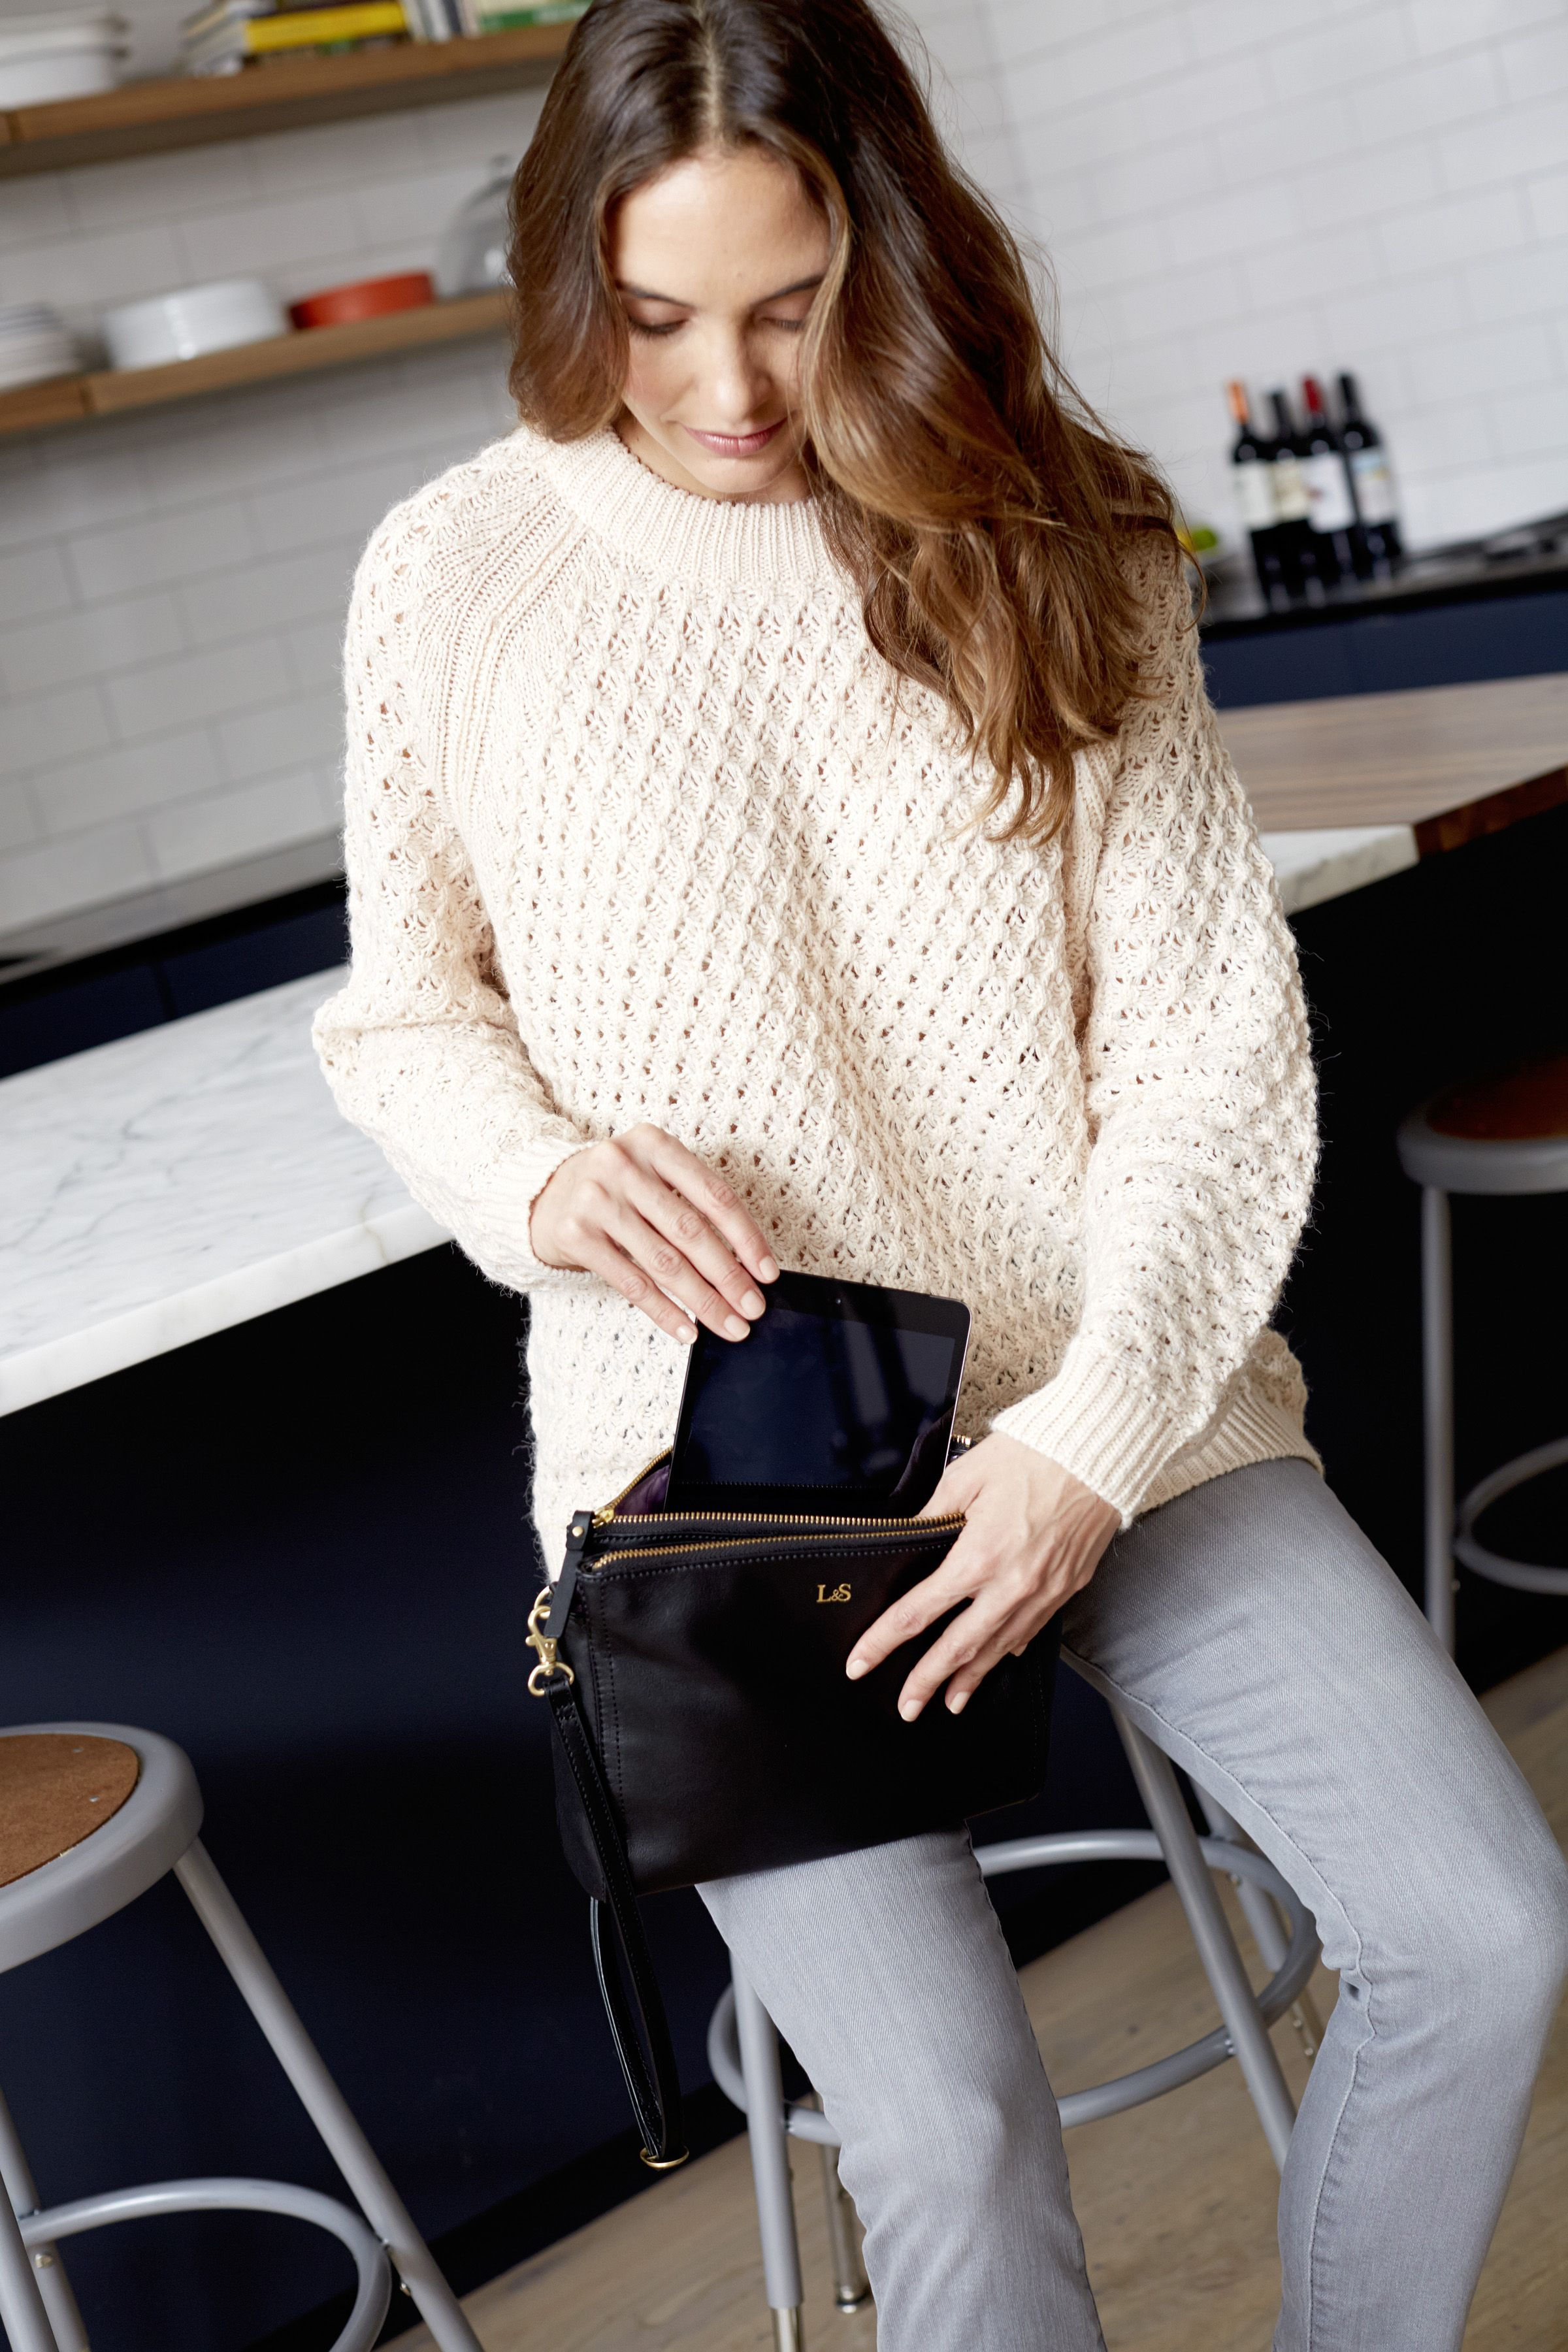 Lo & Sons - The Pearl - Leather Crossbody Bag. Designed to fit a mini-tablet and all your travel or everyday essentials.